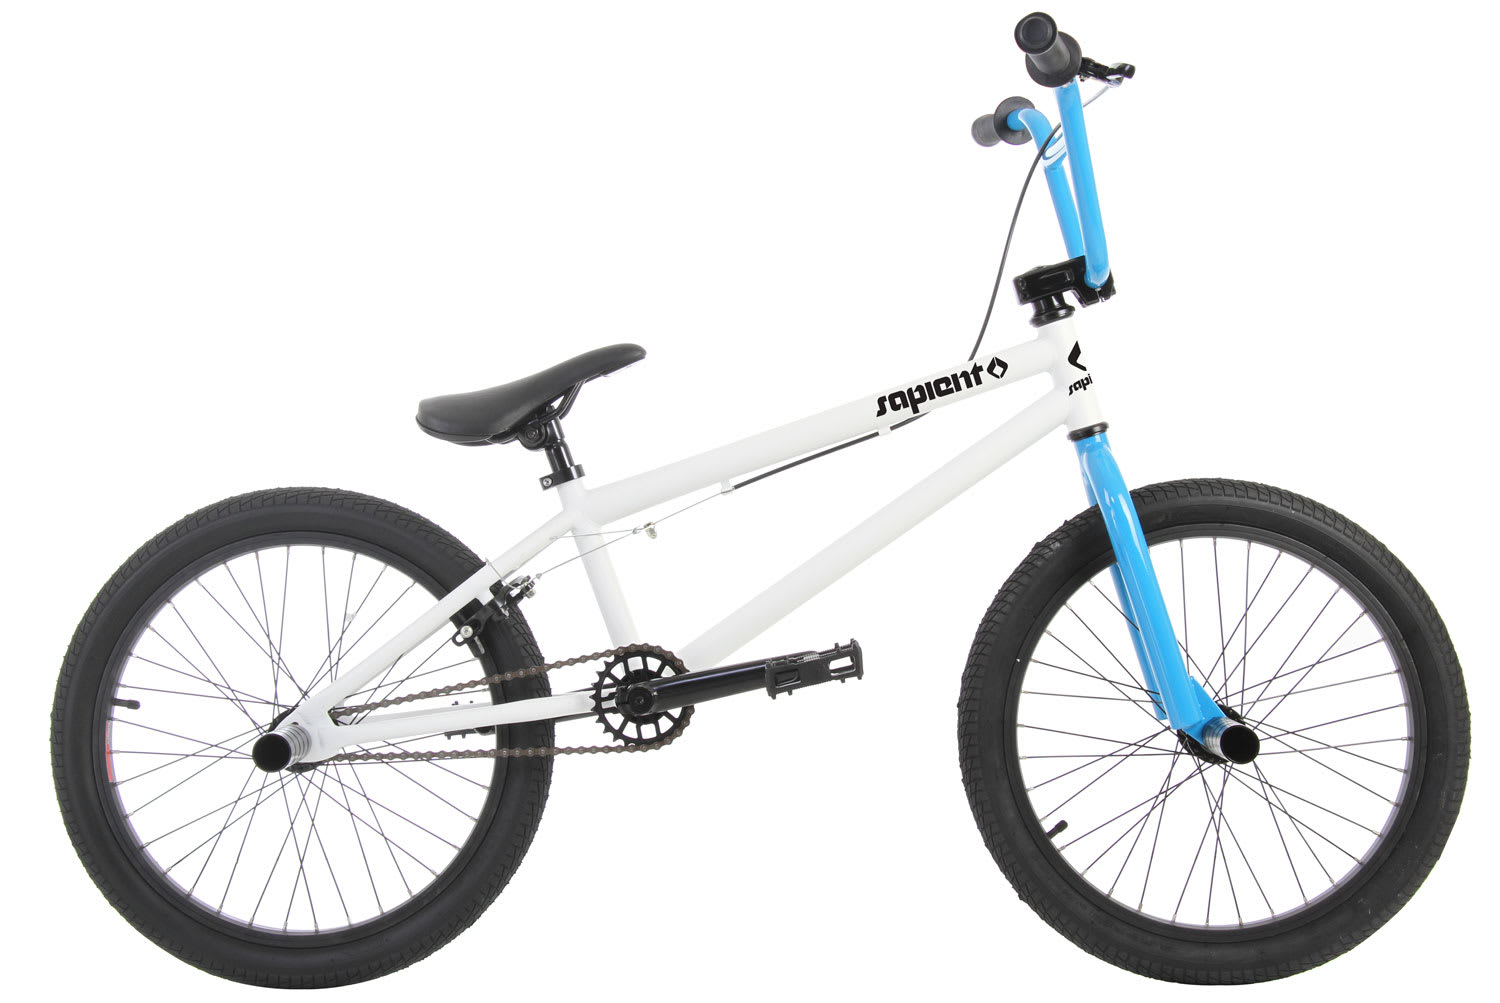 Incredible Discount off MSRP. Brand New Bikes. Guaranteed LOWEST PRICE* ORDER NOW FREE SHIP* TO THE 48 WEB SALE ONLY $ SAVE NOW Click HERE Add to Cart For DEAL Prices Compare from $ More Incredible Bike Deals! Click Here. WEB SALES END SOON SHOP NOW Available in Black, Yellow, Red, MintGreen. Compare from $ WEB SALES, Top Rated MTB Front .